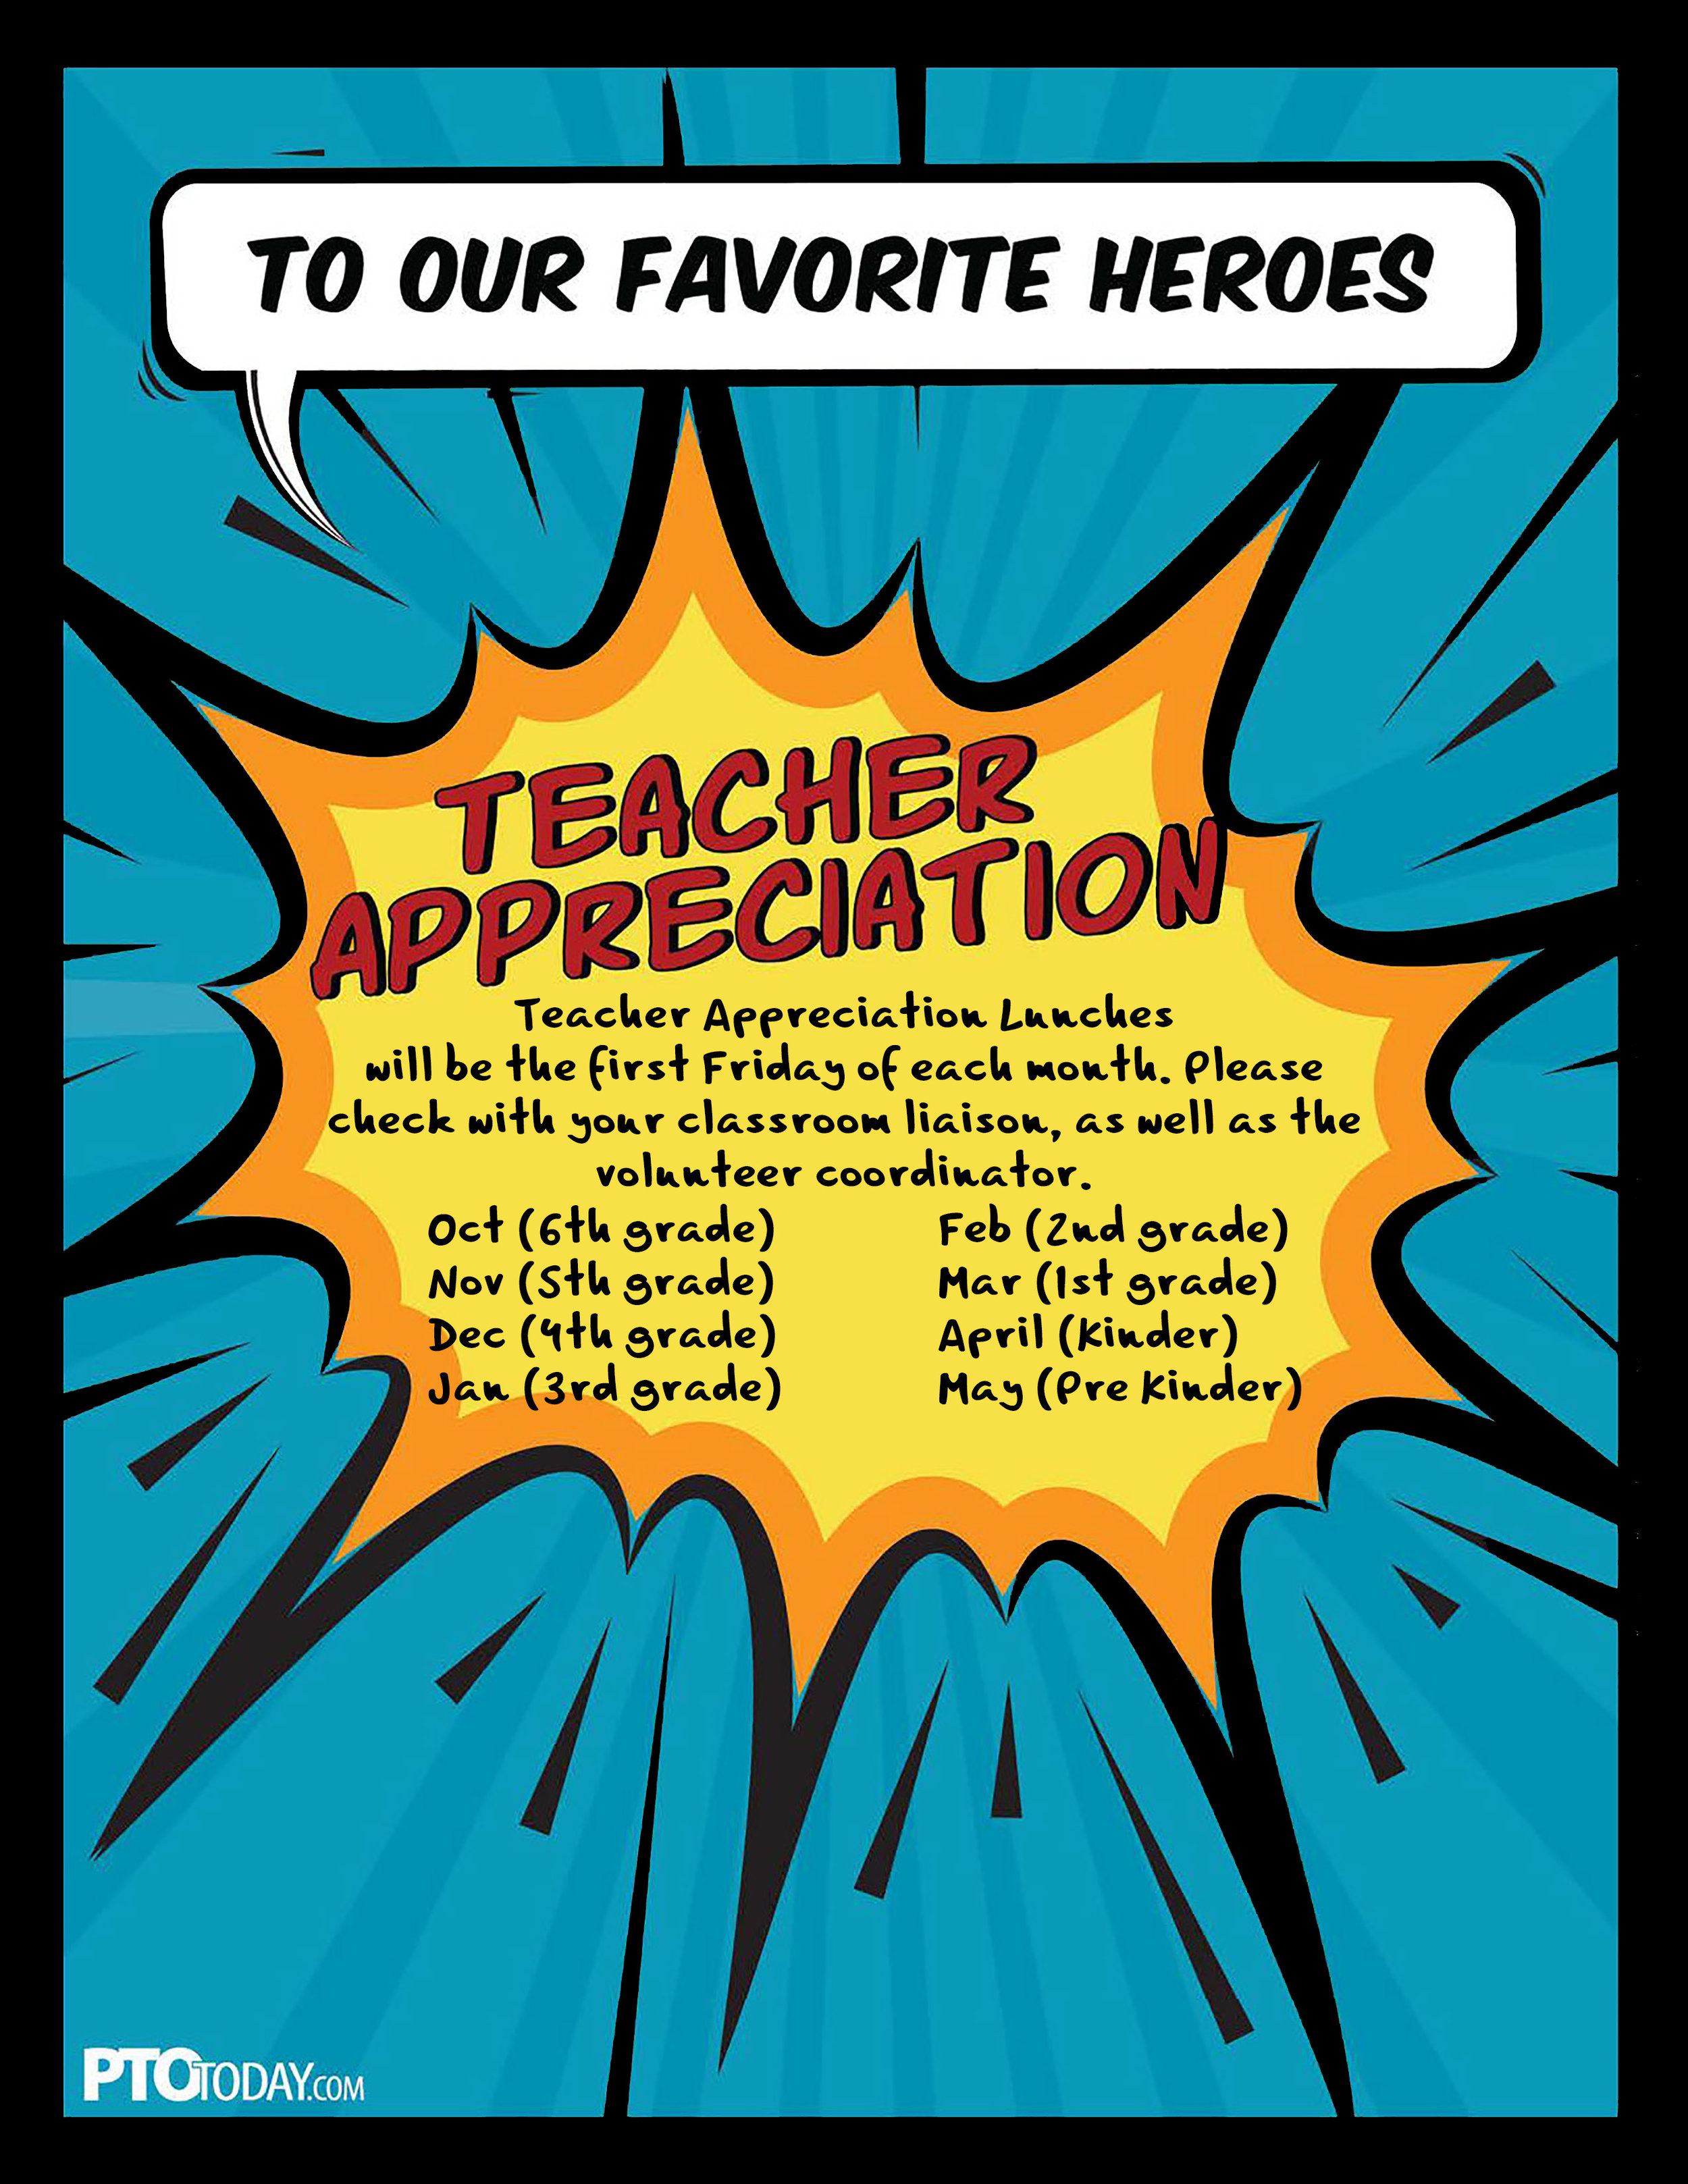 All grades superhero-teacher-appreciation-invitation.jpg